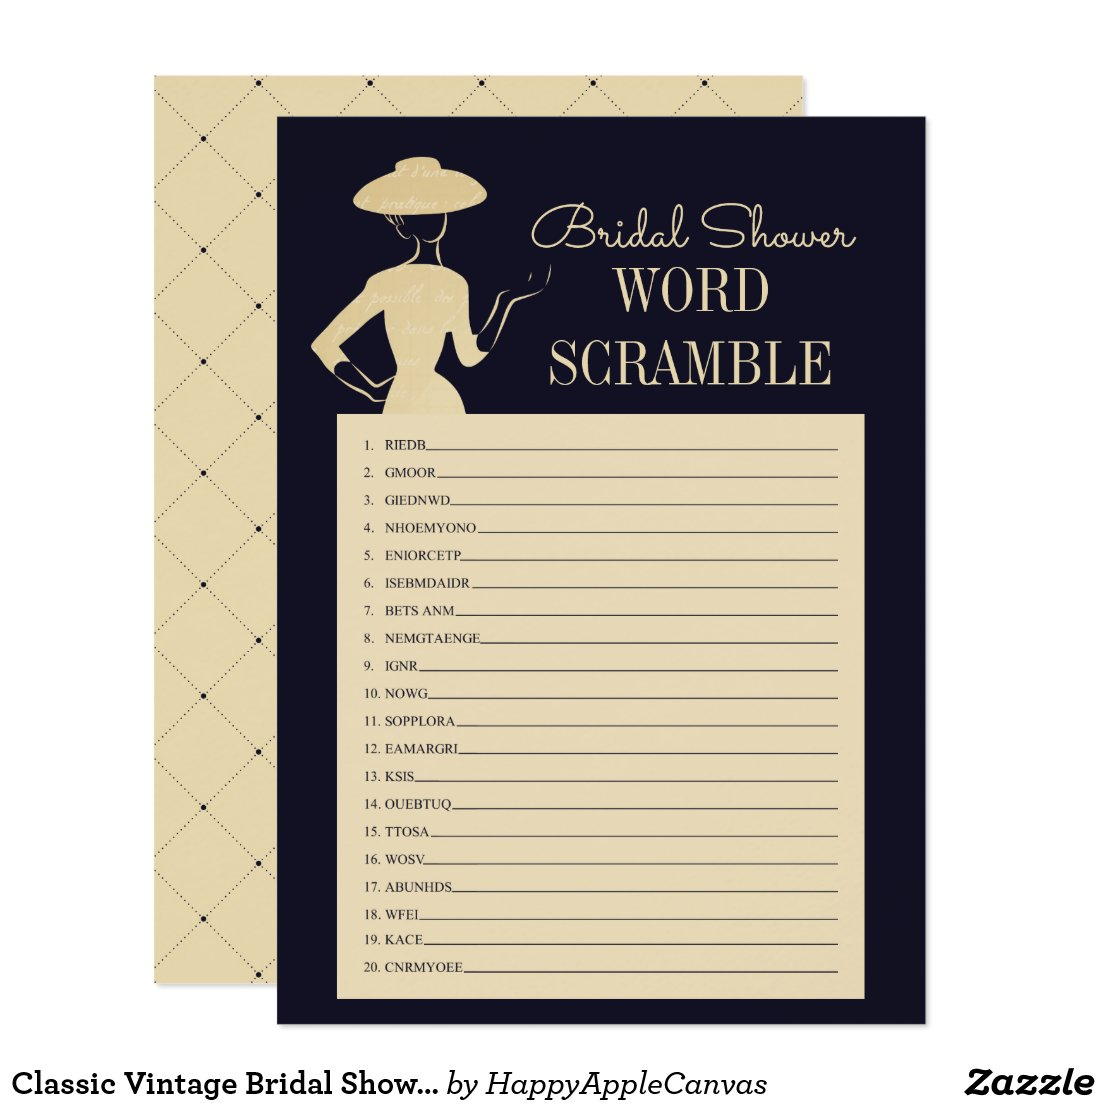 Classic Vintage Bridal Shower Word Scramble Card